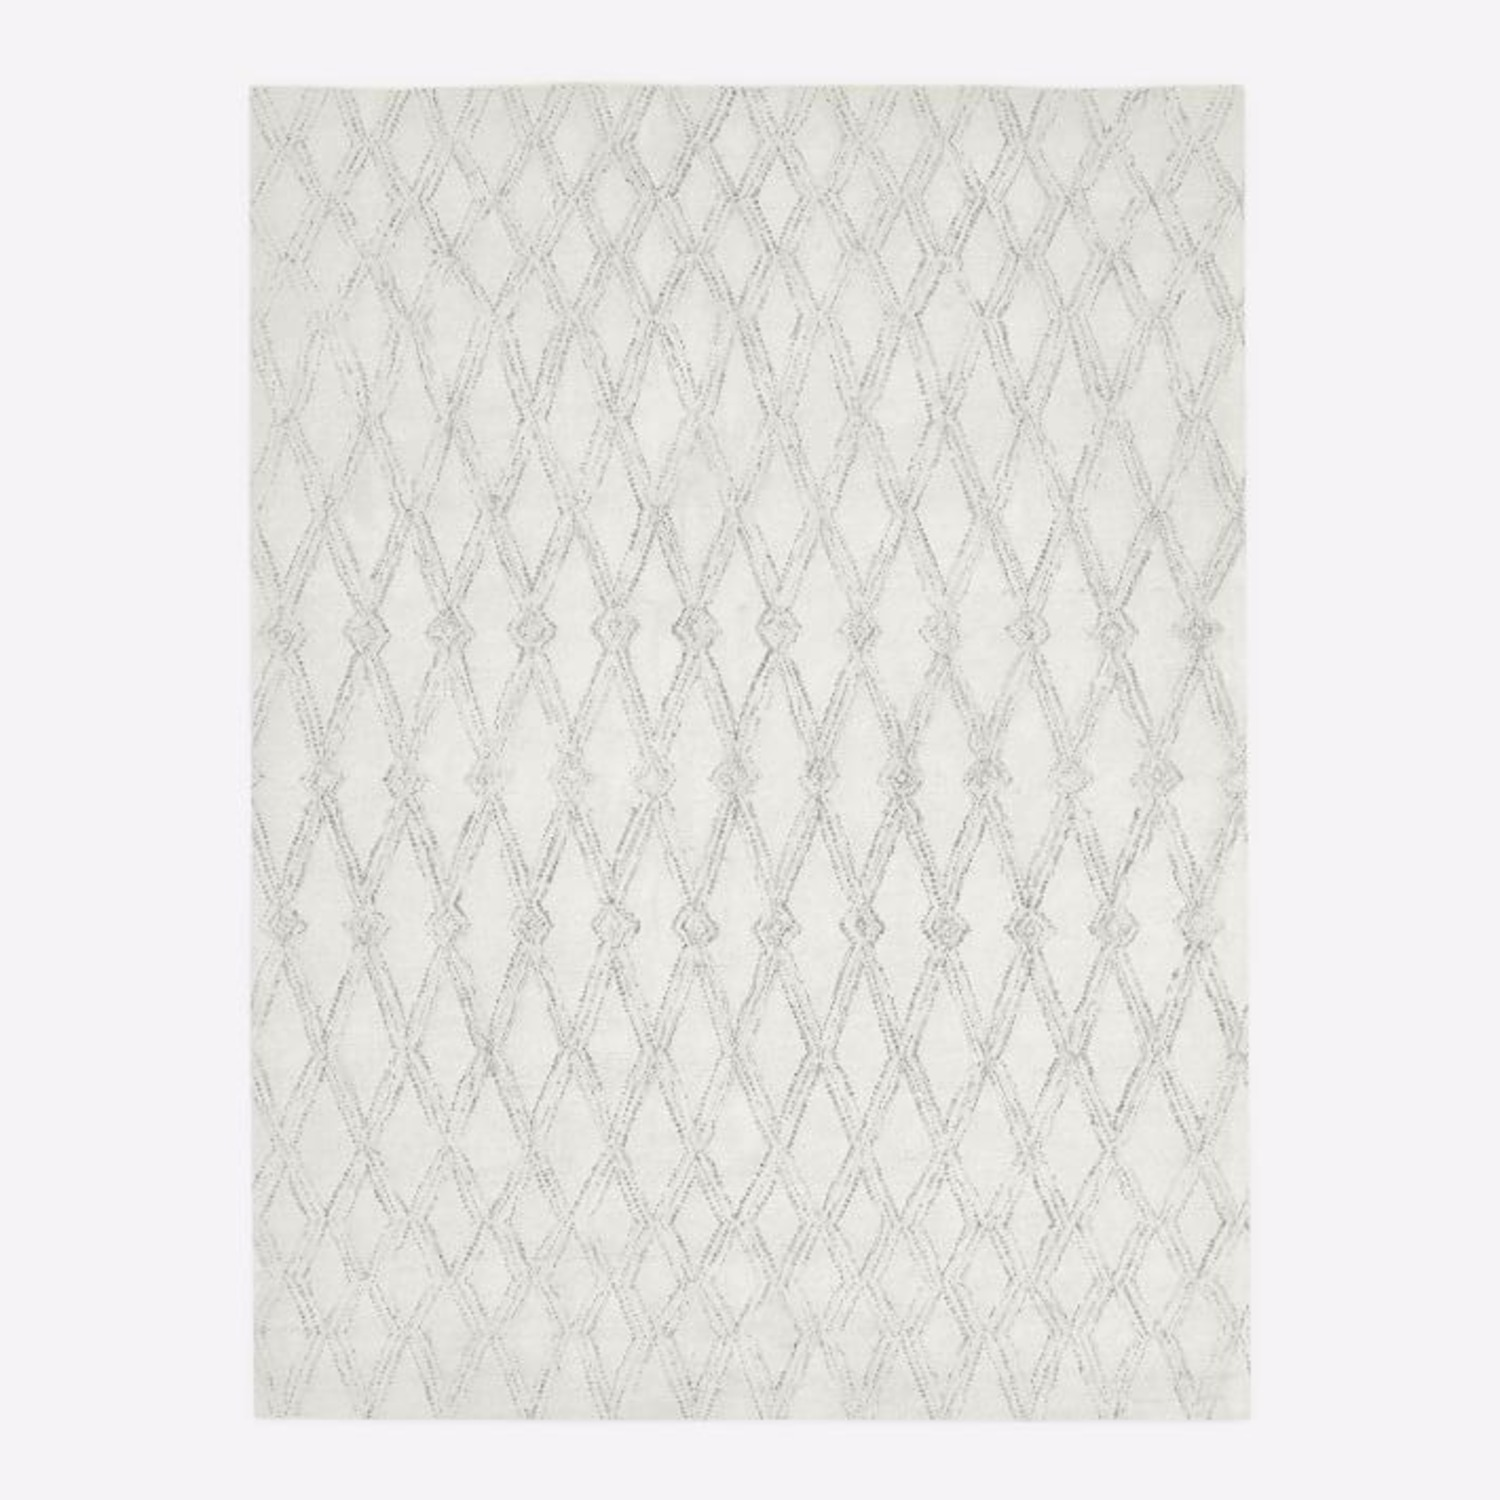 West Elm Hazy Lattice Rug, Ivory - image-3